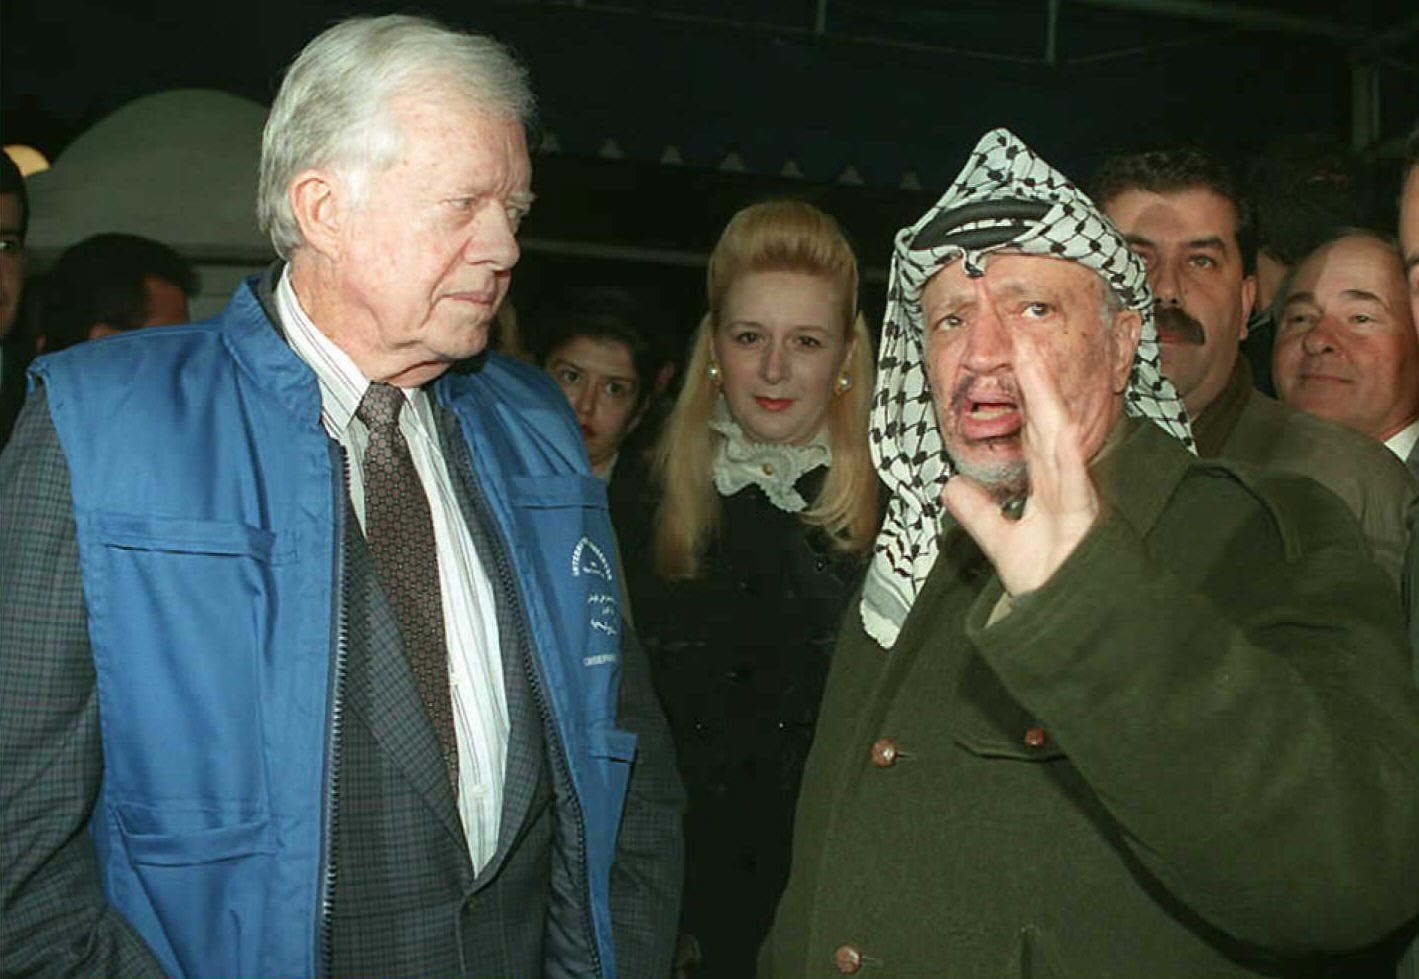 Former US President Jimmy Carter (L) watches Palestinian leader Yasser Arafat speak to reporters  upon his arrival in Gaza City, January 19, 1996. (File photo, AFP)